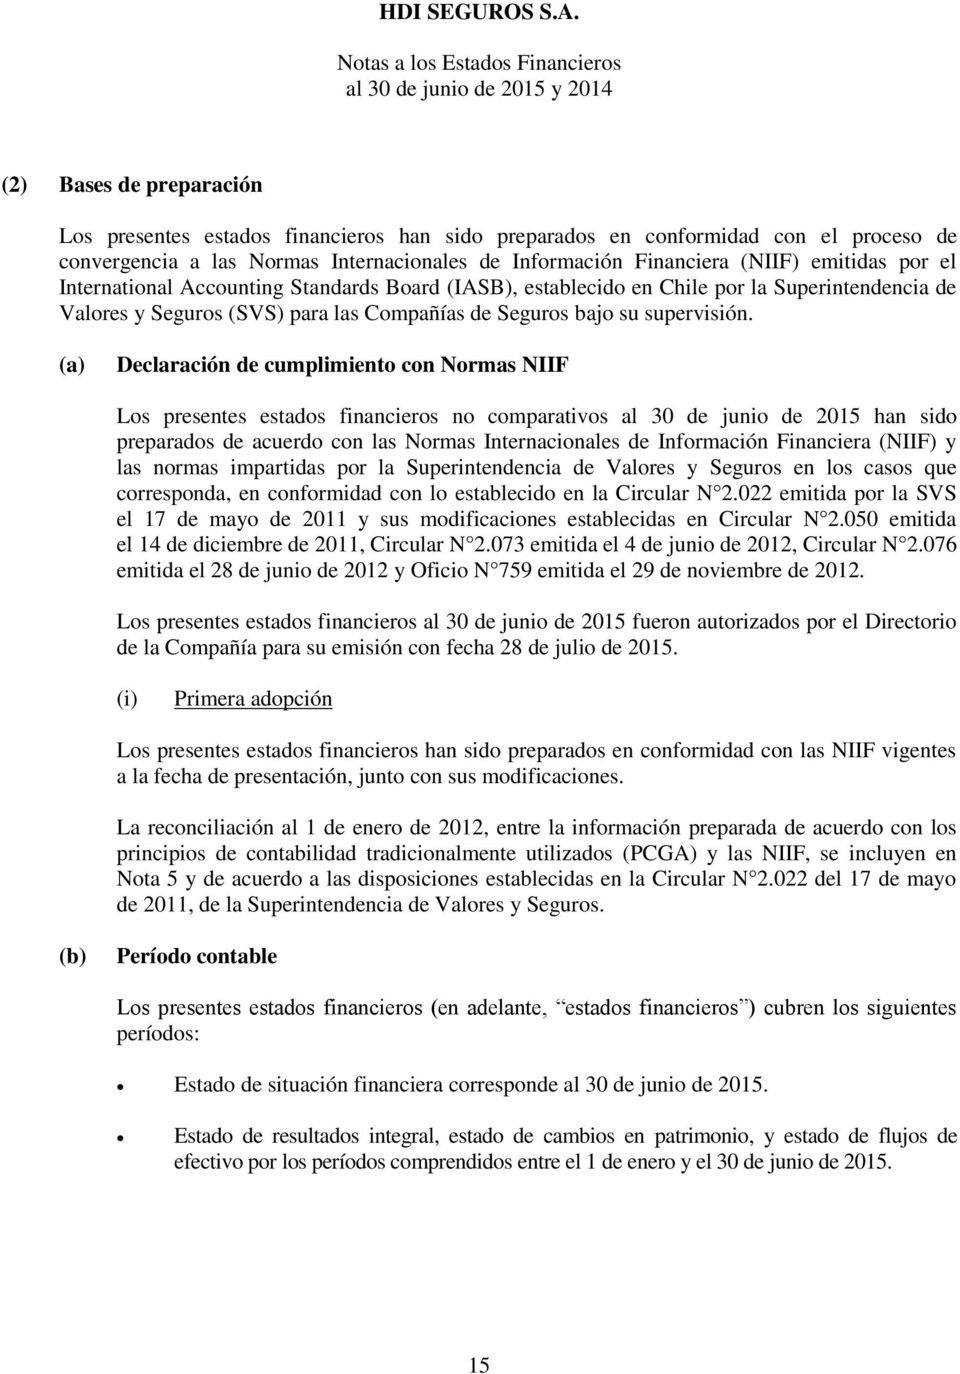 Internacionales de Información Financiera (NIIF) emitidas por el International Accounting Standards Board (IASB), establecido en Chile por la Superintendencia de Valores y Seguros (SVS) para las